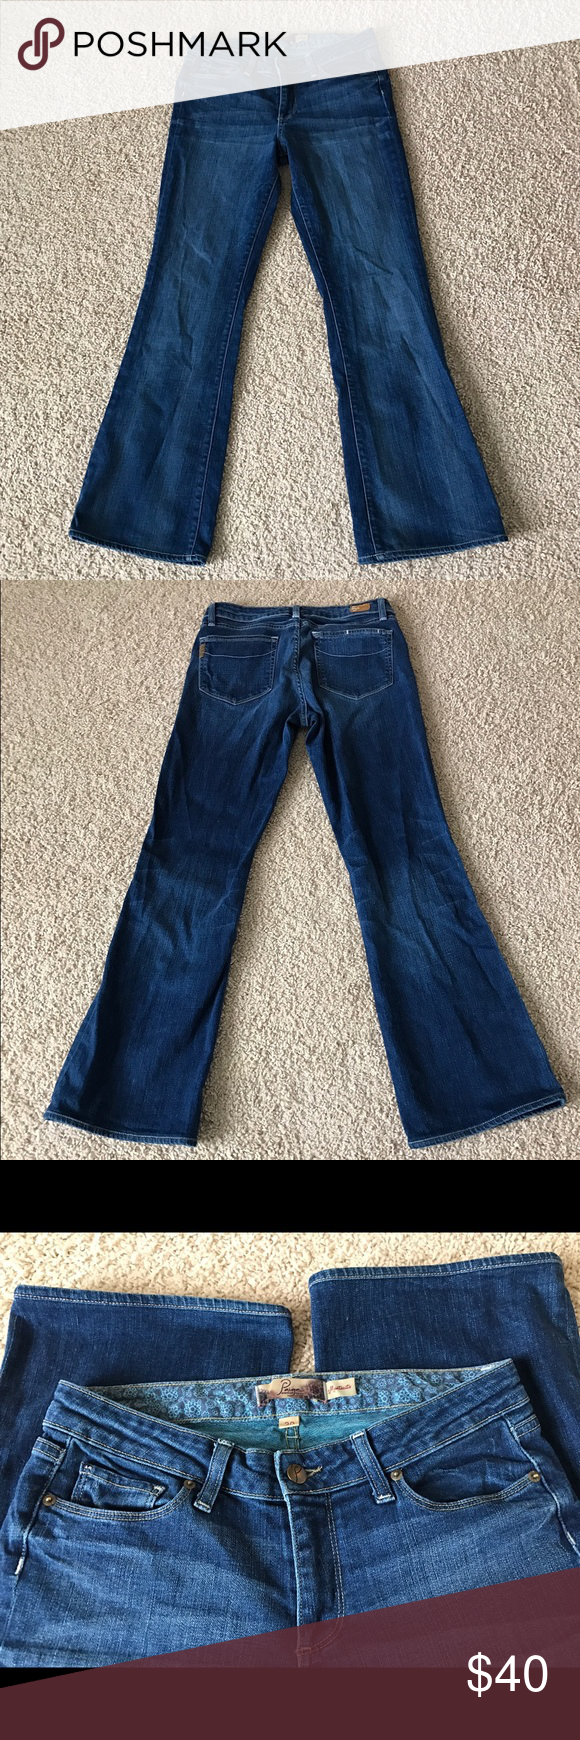 "✨💕 Paige - Bootcut jeans Paige Premium Denim-Montecito Bootcut ✨          Awesome jean in Great condition!   Inseam 31"" Paige Jeans Jeans Boot Cut"